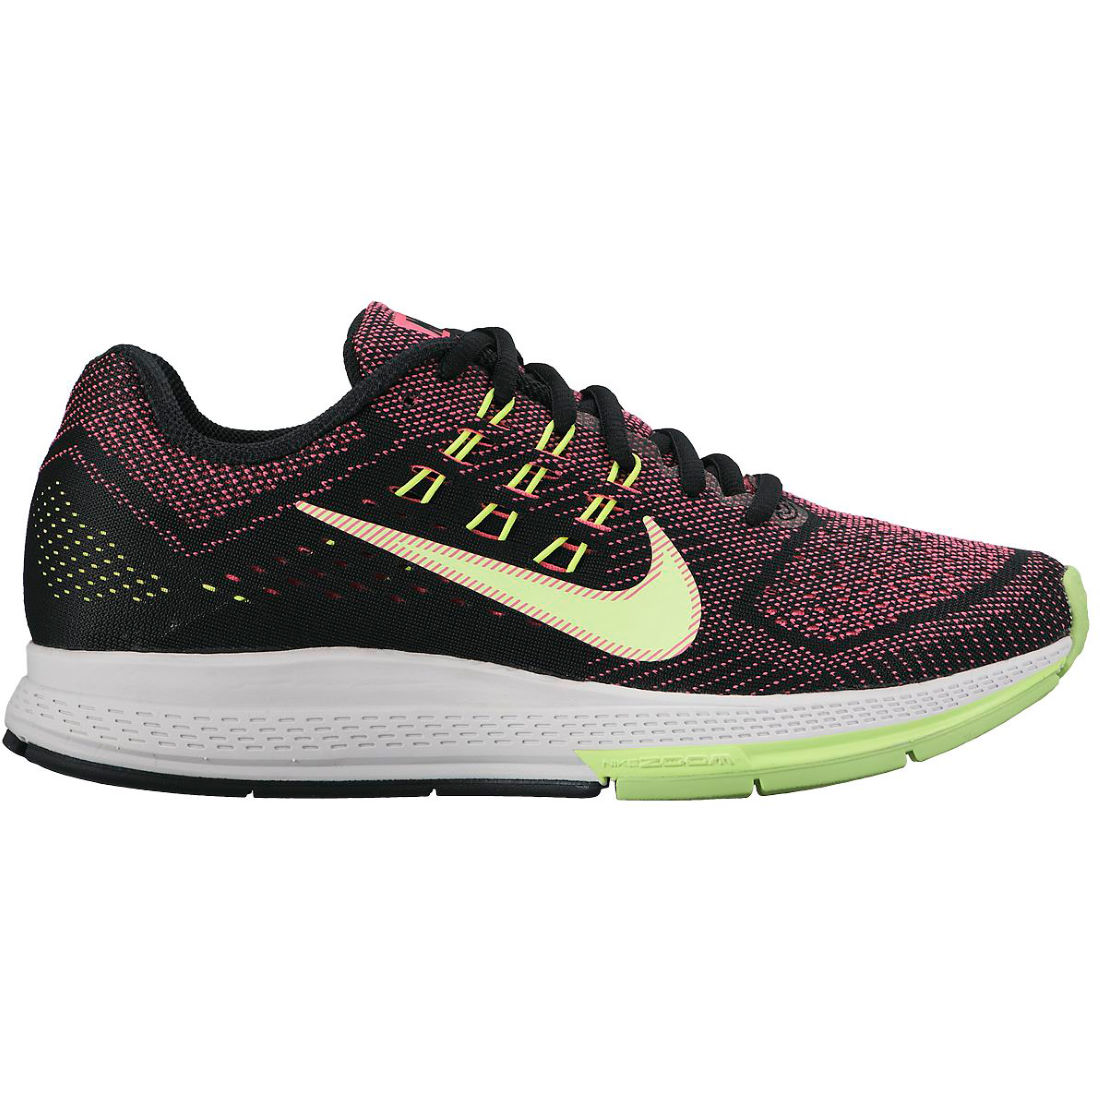 chaussures de running stables nike women 39 s air zoom structure 18 shoes fa15 wiggle france. Black Bedroom Furniture Sets. Home Design Ideas